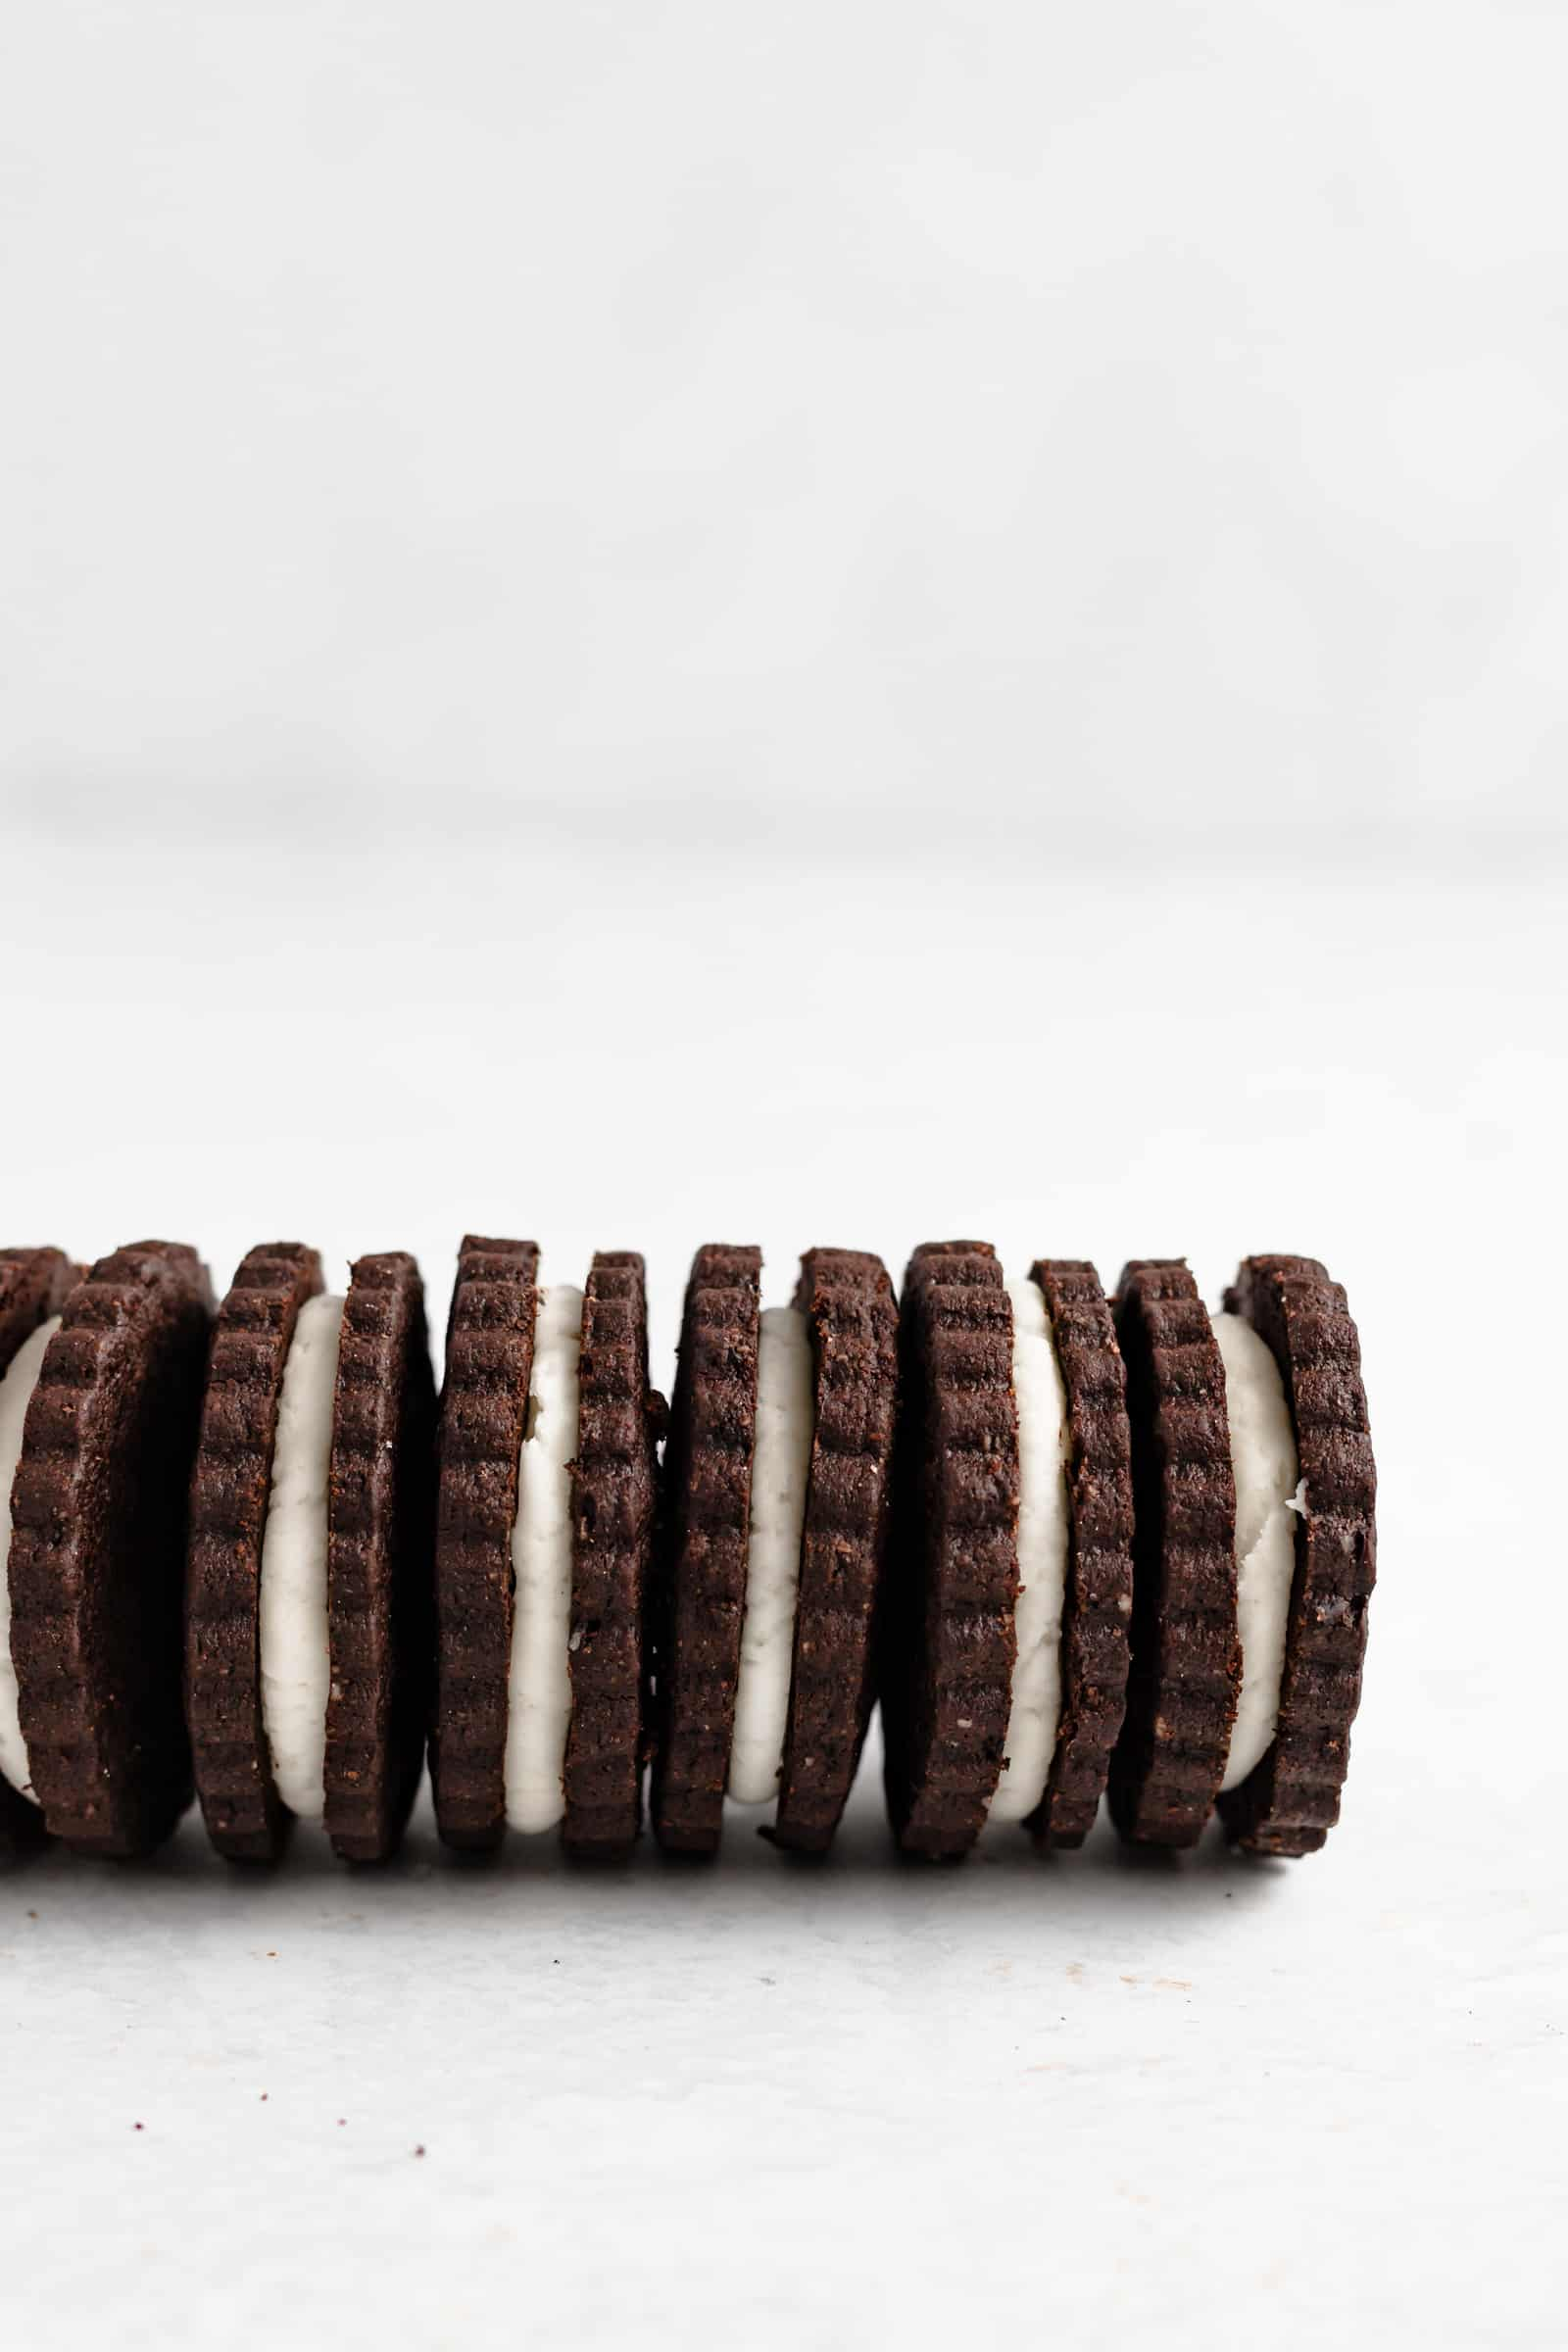 Cream Filled Chocolate Sandwich Cookies - The BEST homemade Oreo cookie recipe